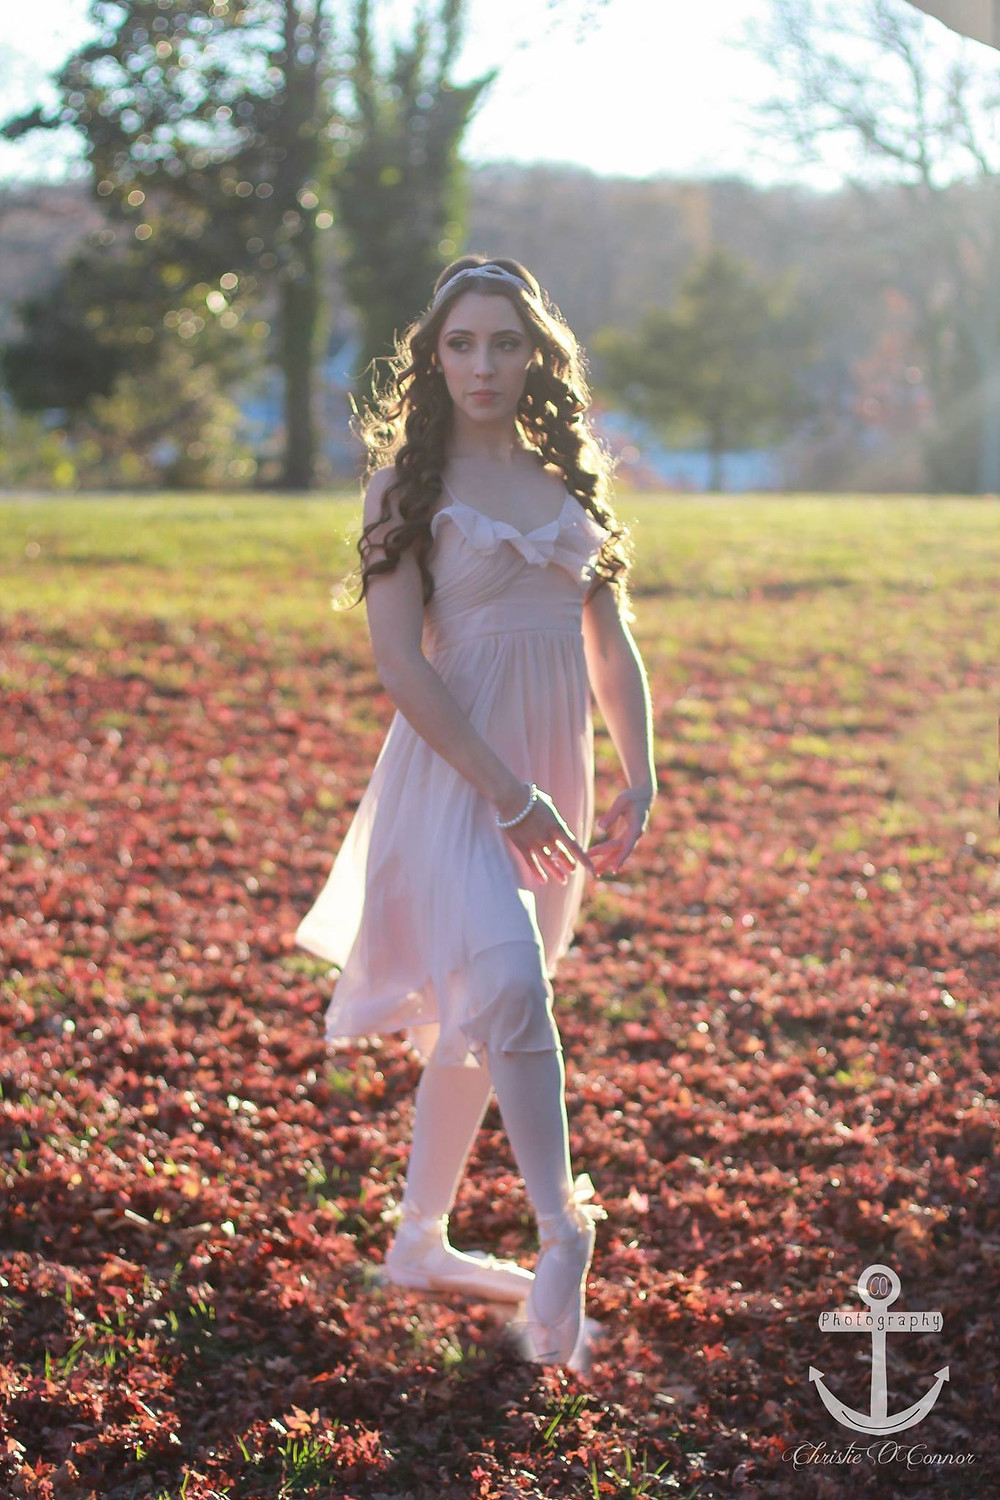 Christie O'Connor Photography picture of dancer